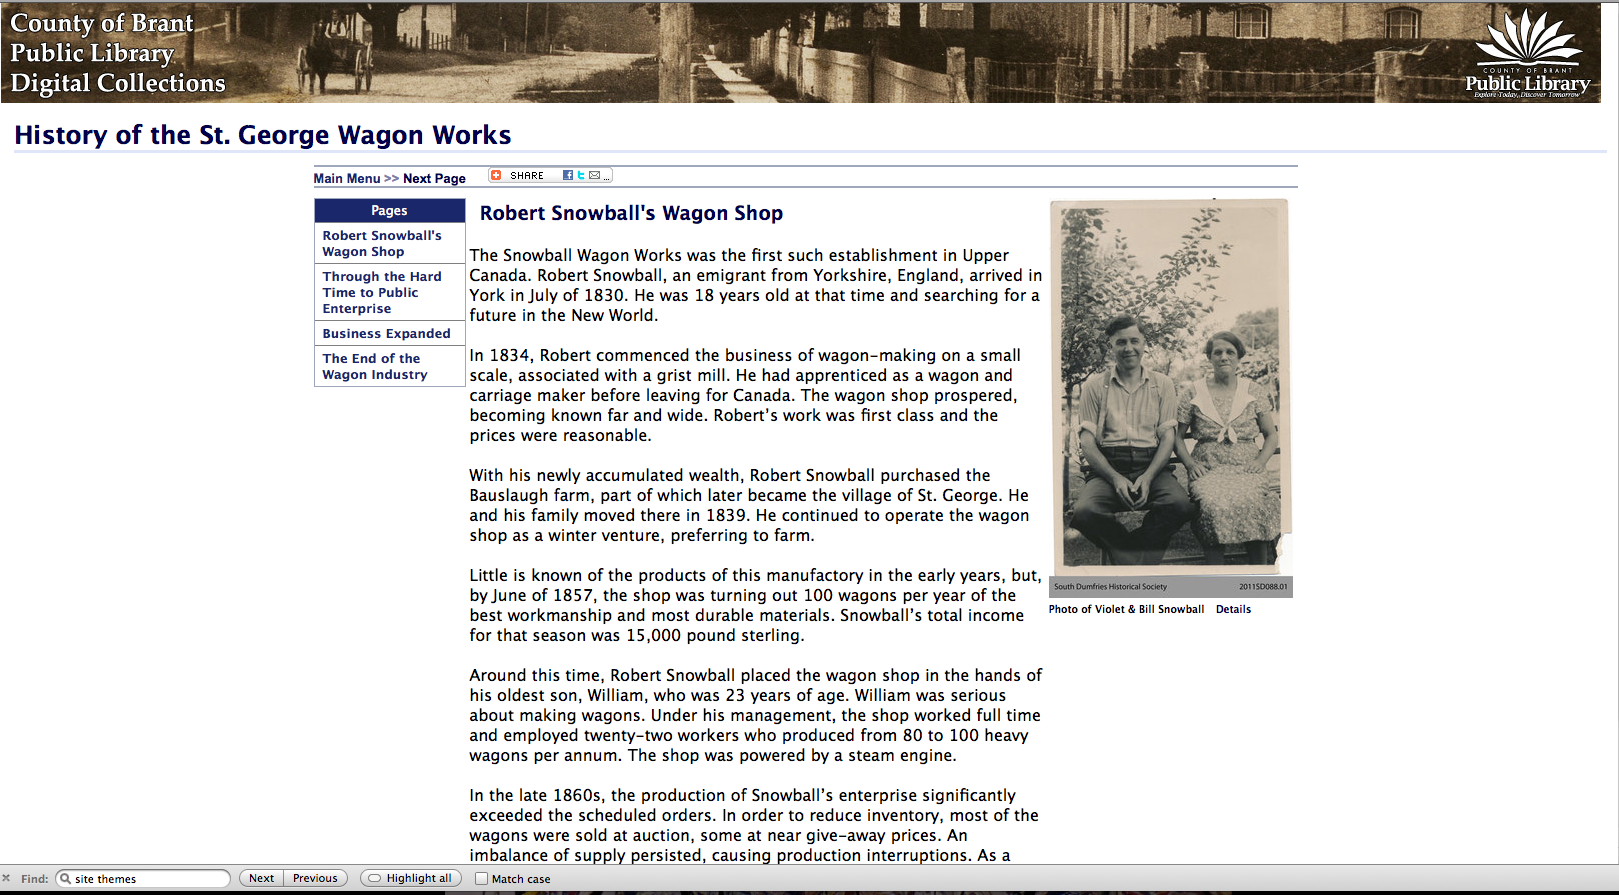 History of the St. George wagon works screenshot